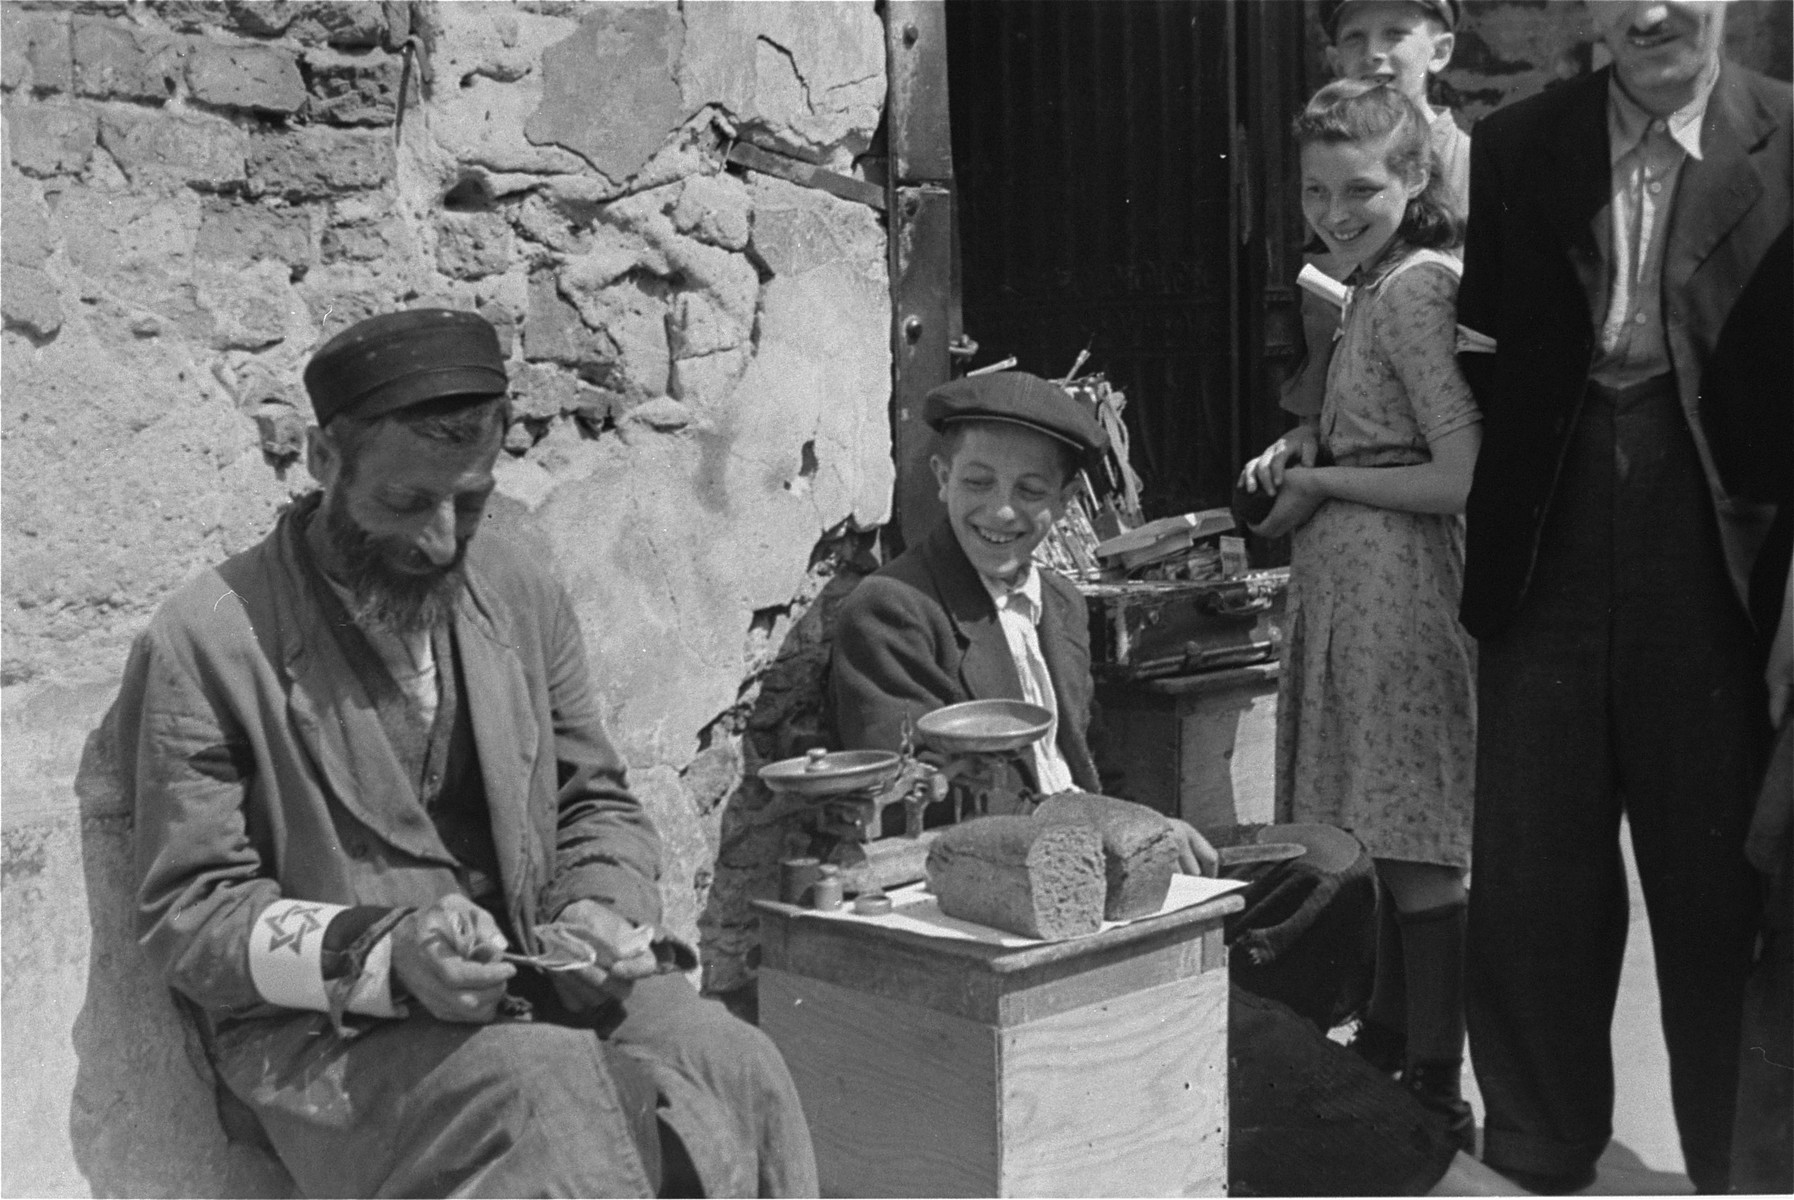 A Jewish man and youth sell bread on the street in the Warsaw ghetto.